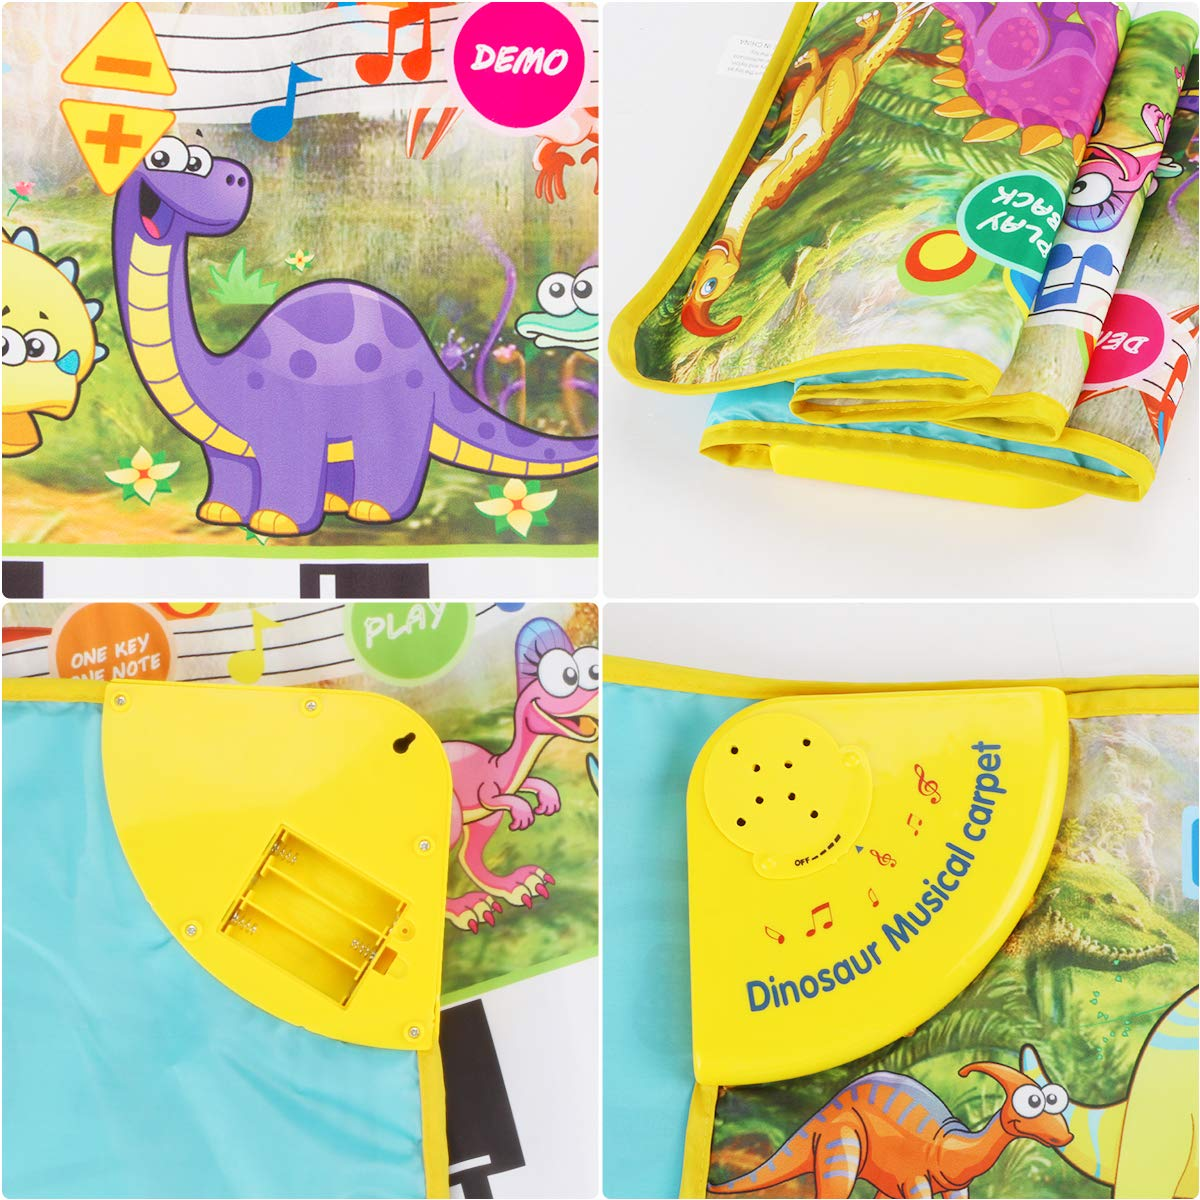 Piano Mat, Tencoz Musical Piano Mat with 8 Dinosaurs Sounds Portable Electronic Educational Musical Blanket Dinosaur Toys Gifts for Kids Toddler Girls Boys by Tencoz (Image #4)